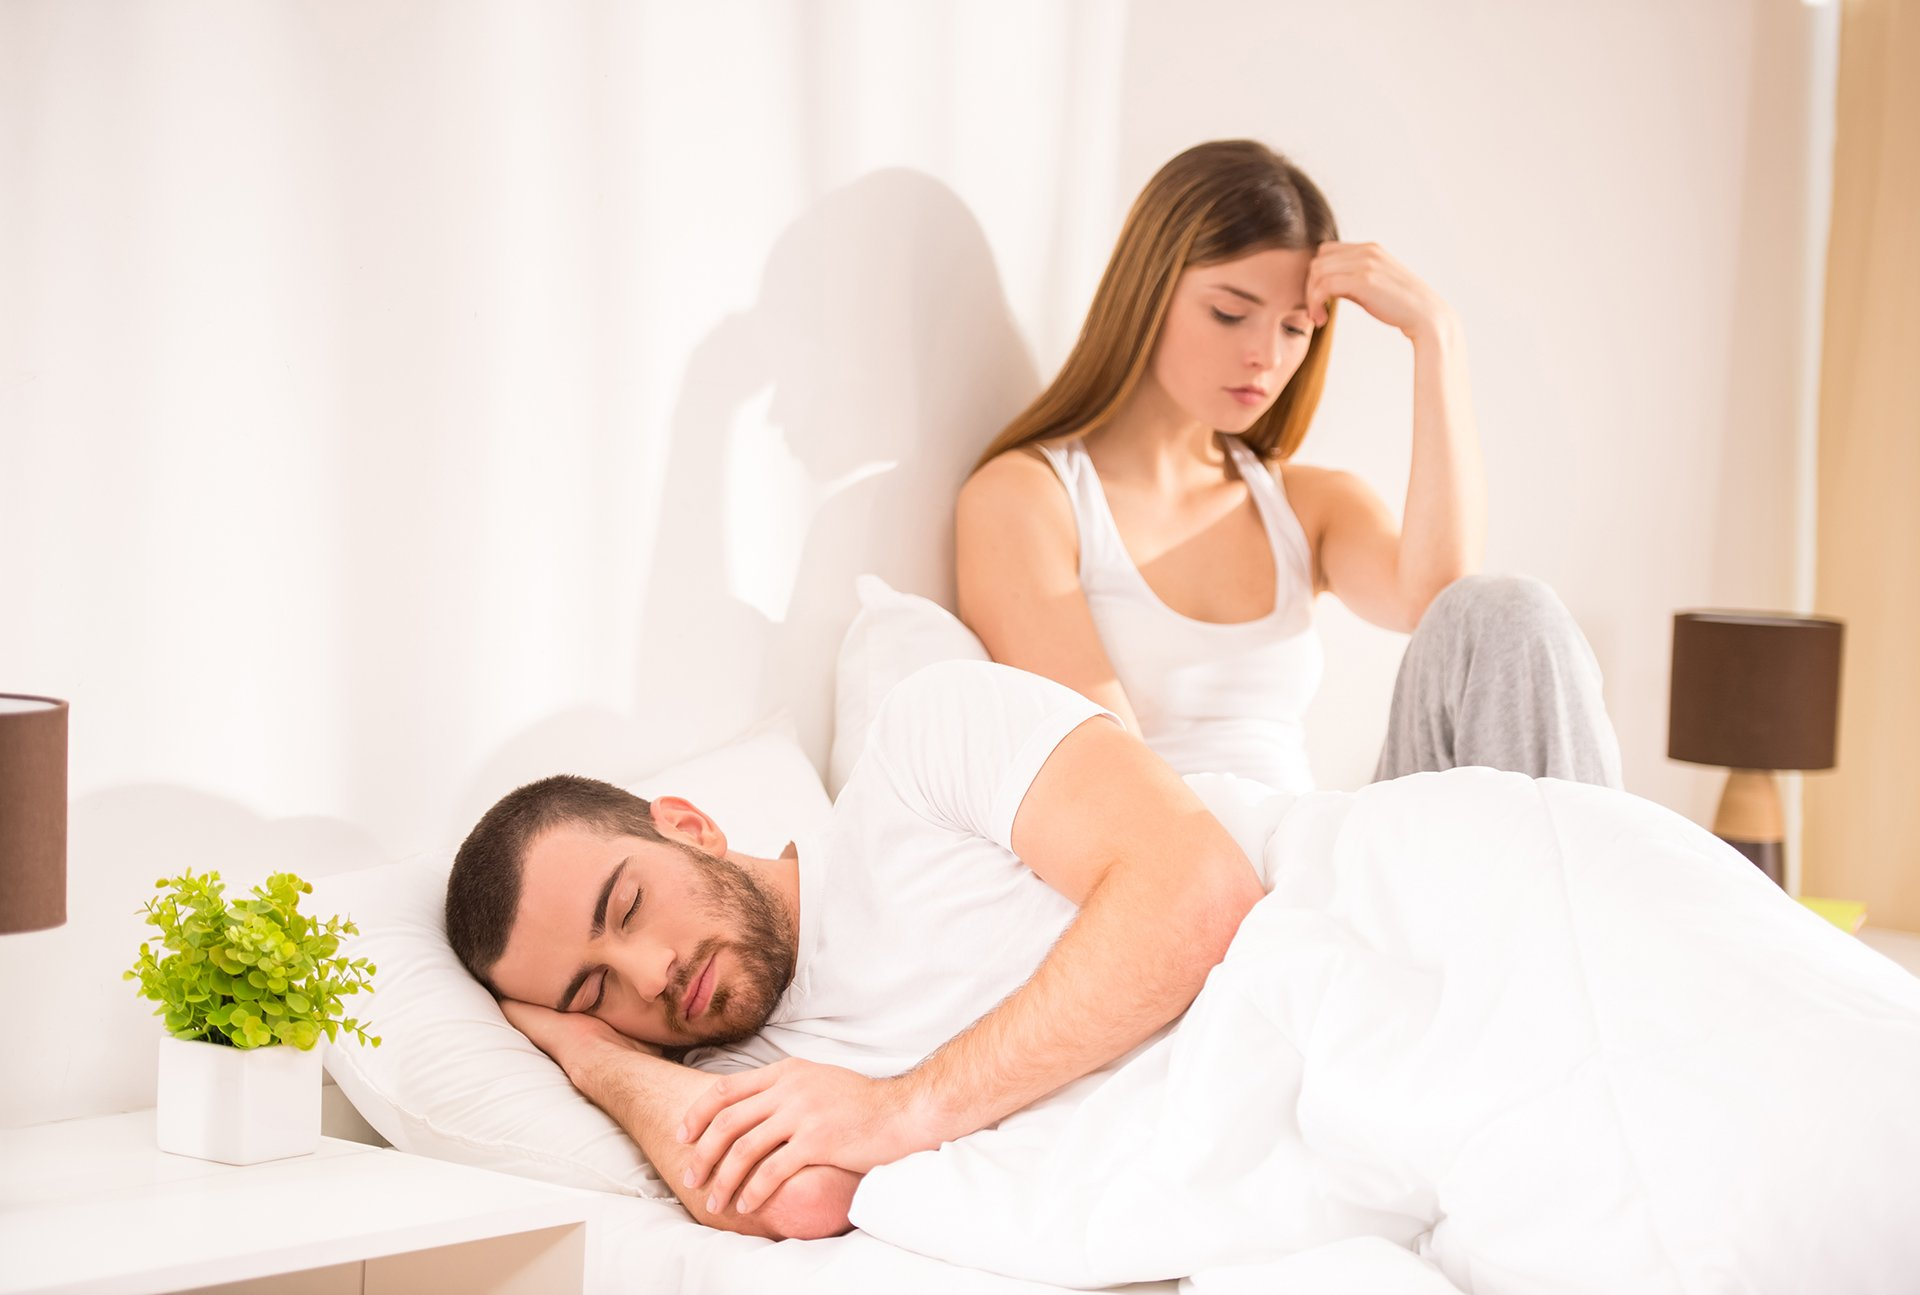 How to Take Care of Erectile Dysfunction (ED) Problems during a Pandemic?